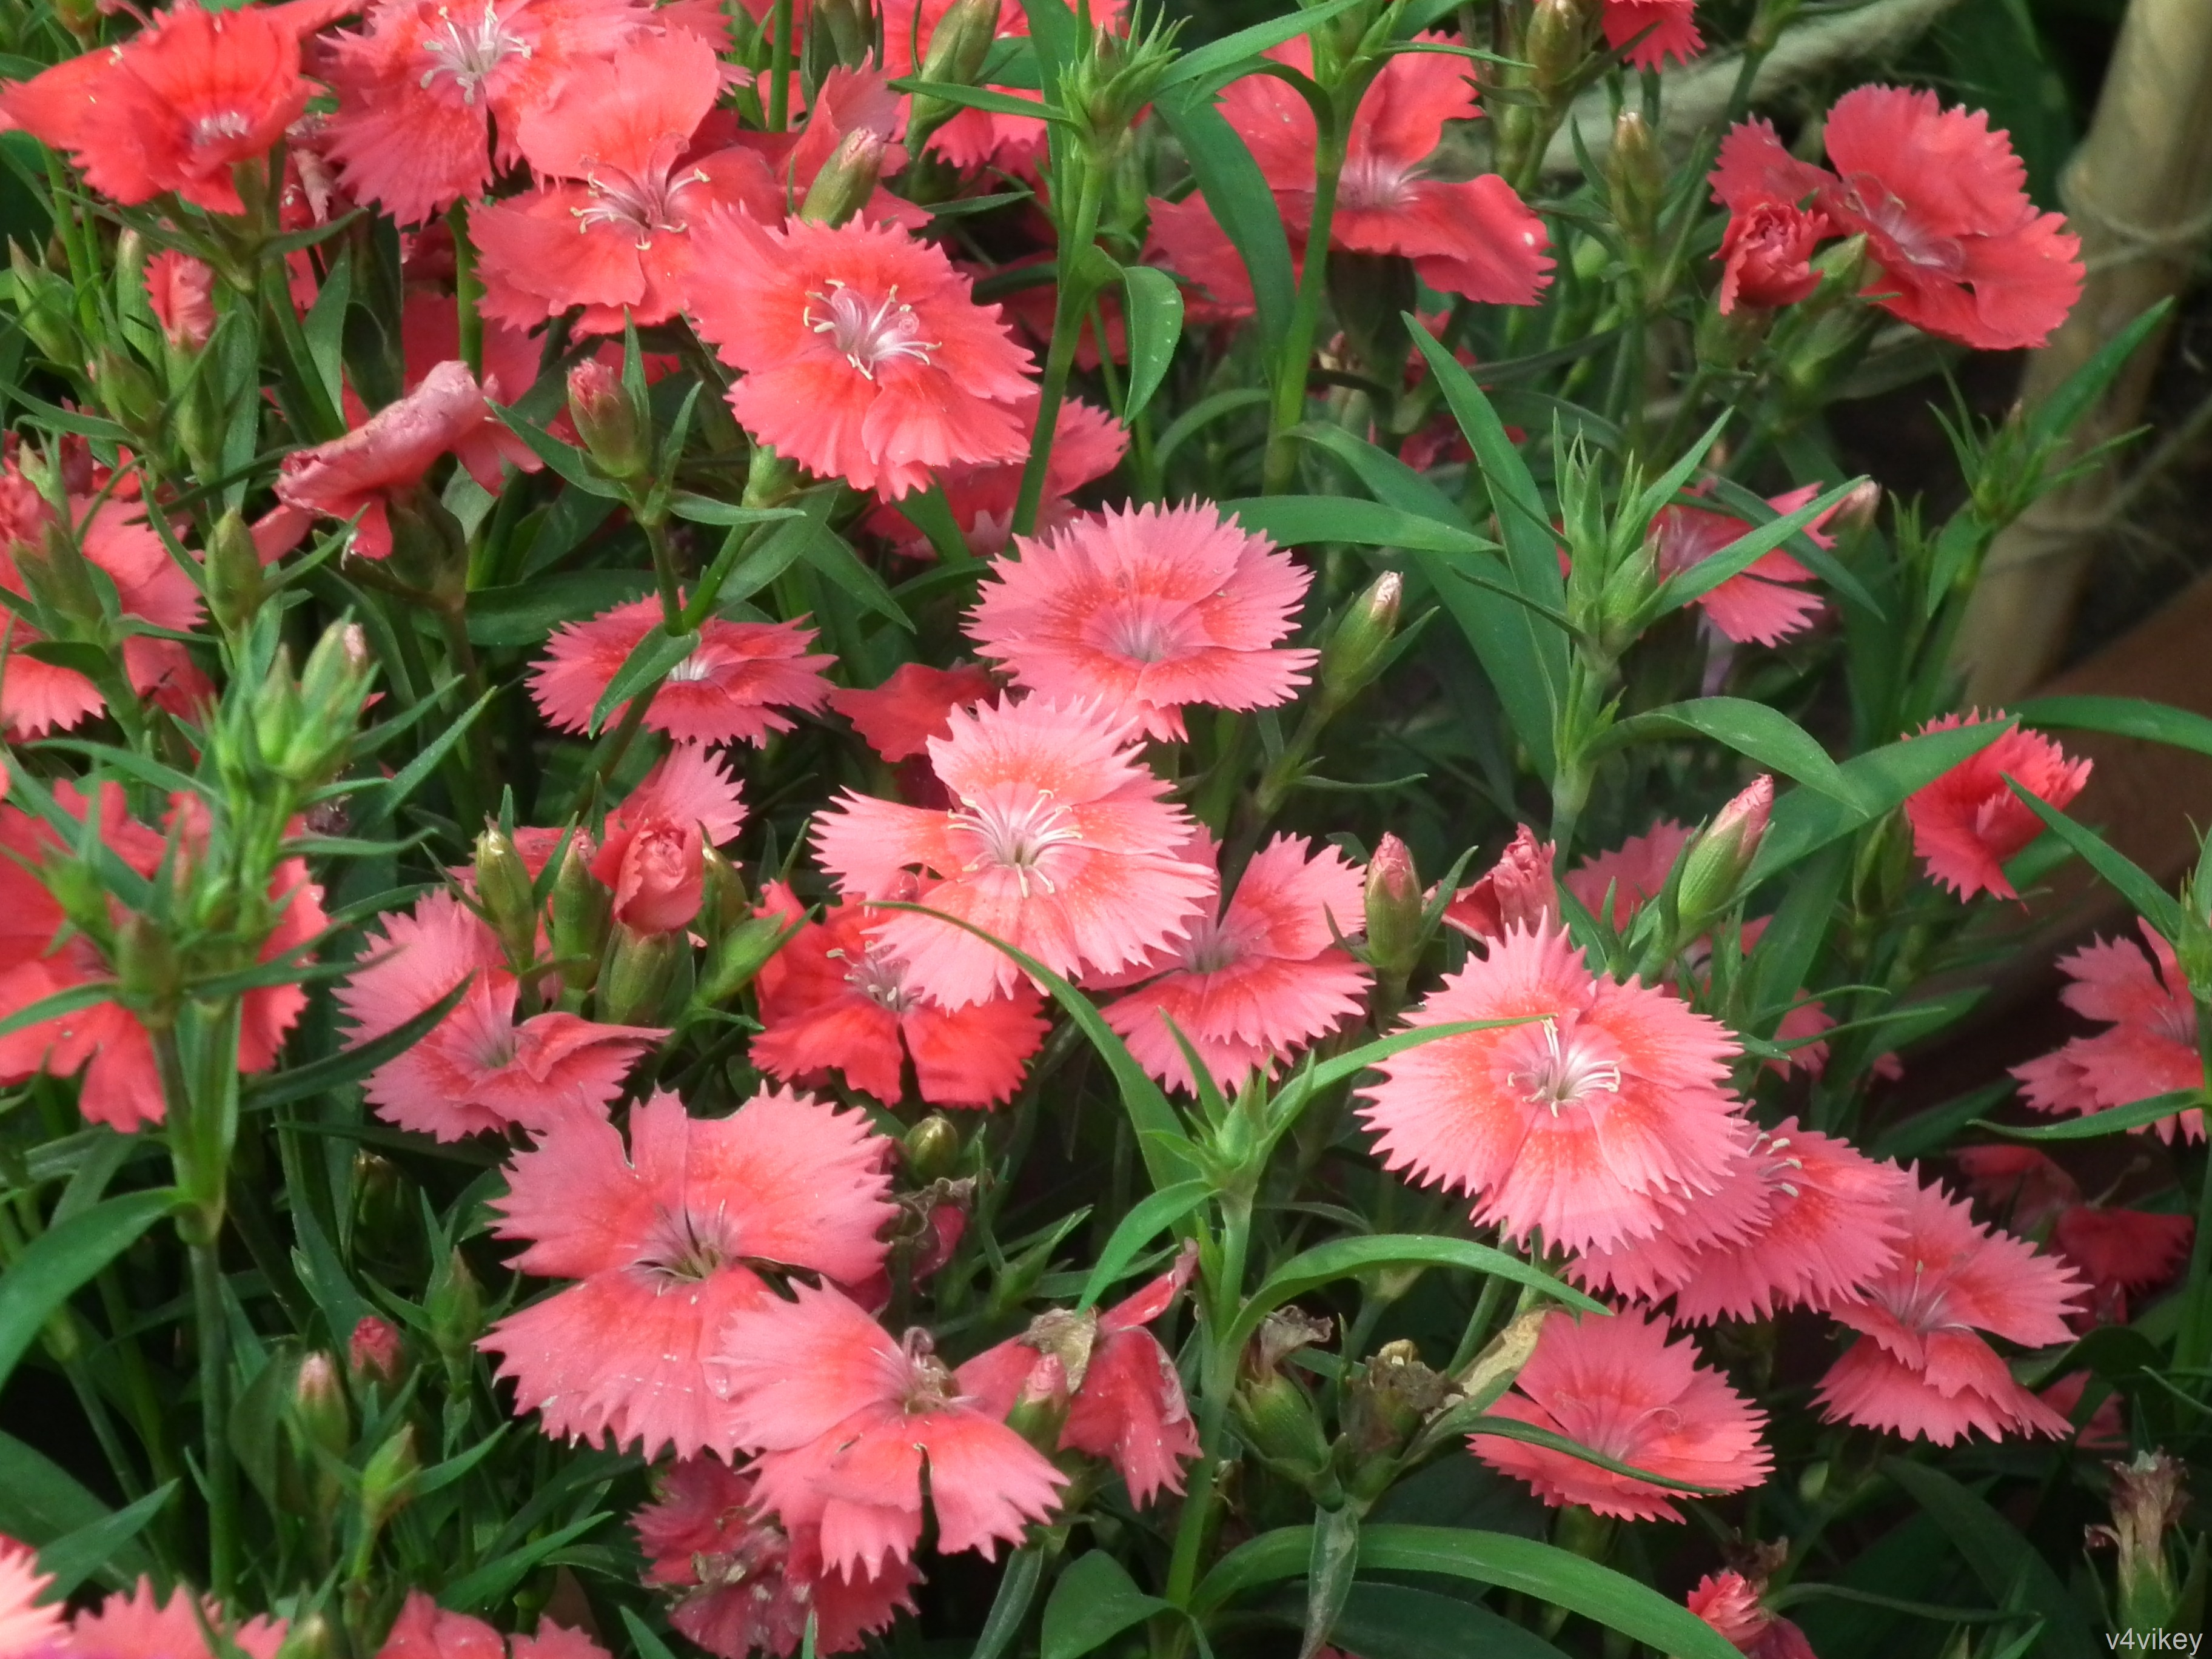 Dianthus first love flowers are beautiful wallpaper tadka dianthus flavora rose flowers izmirmasajfo